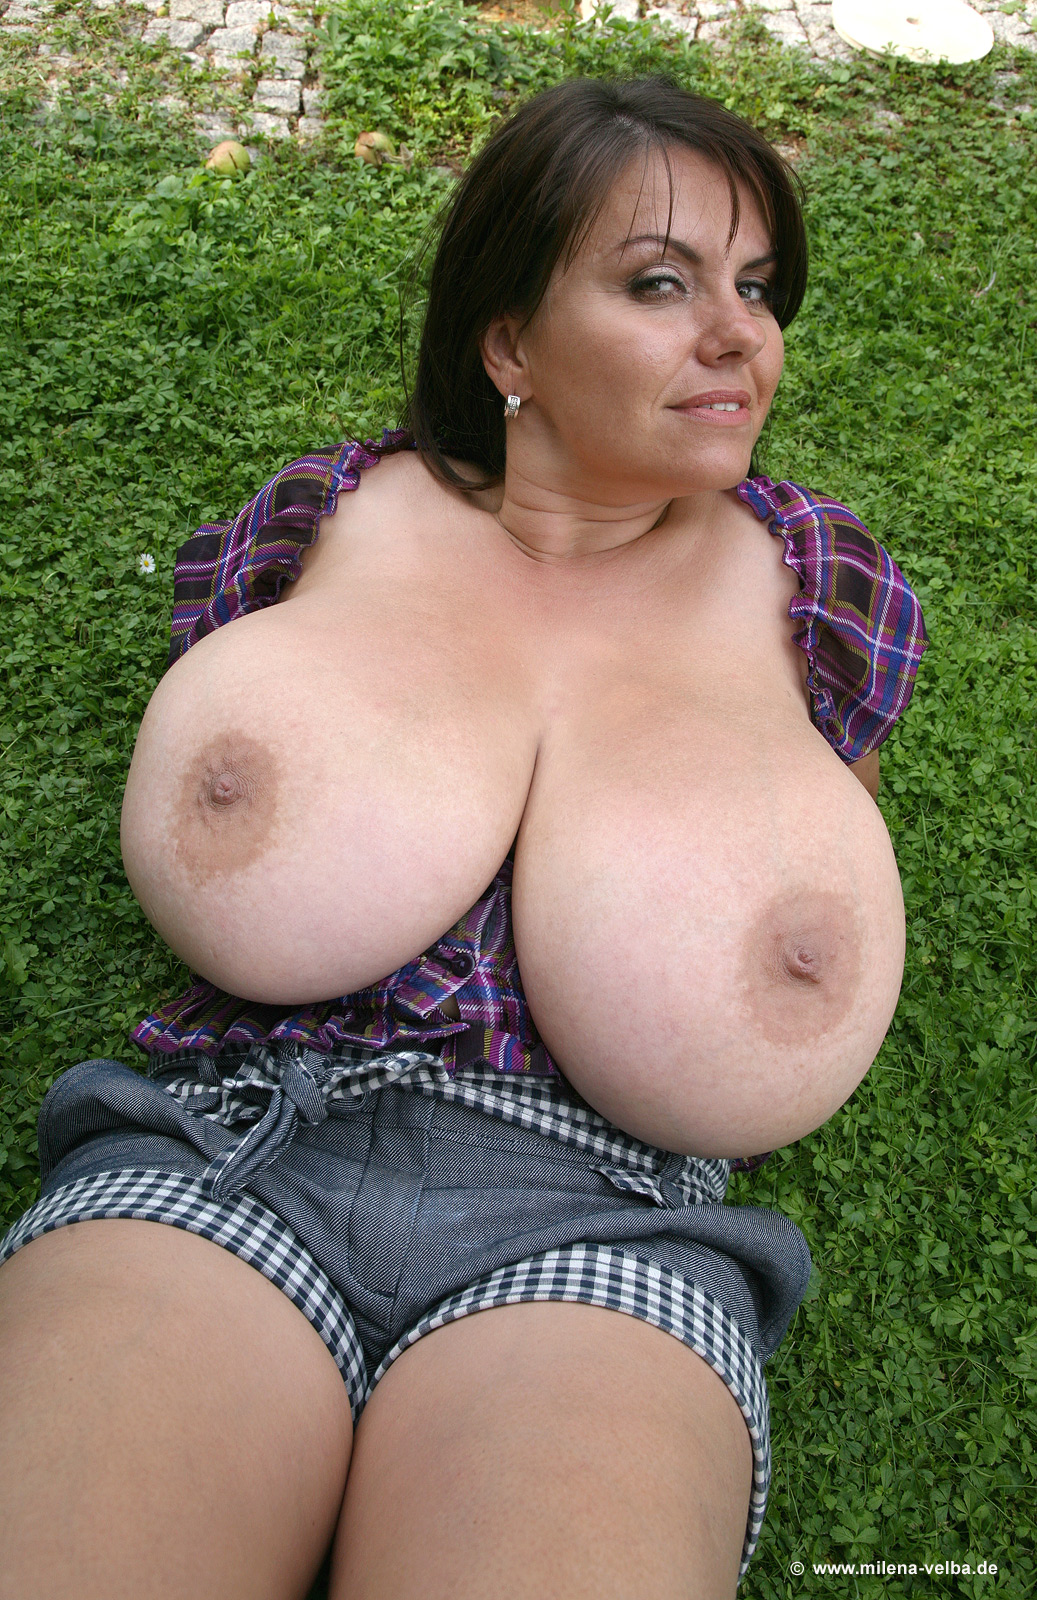 Big tits milena velba boobs